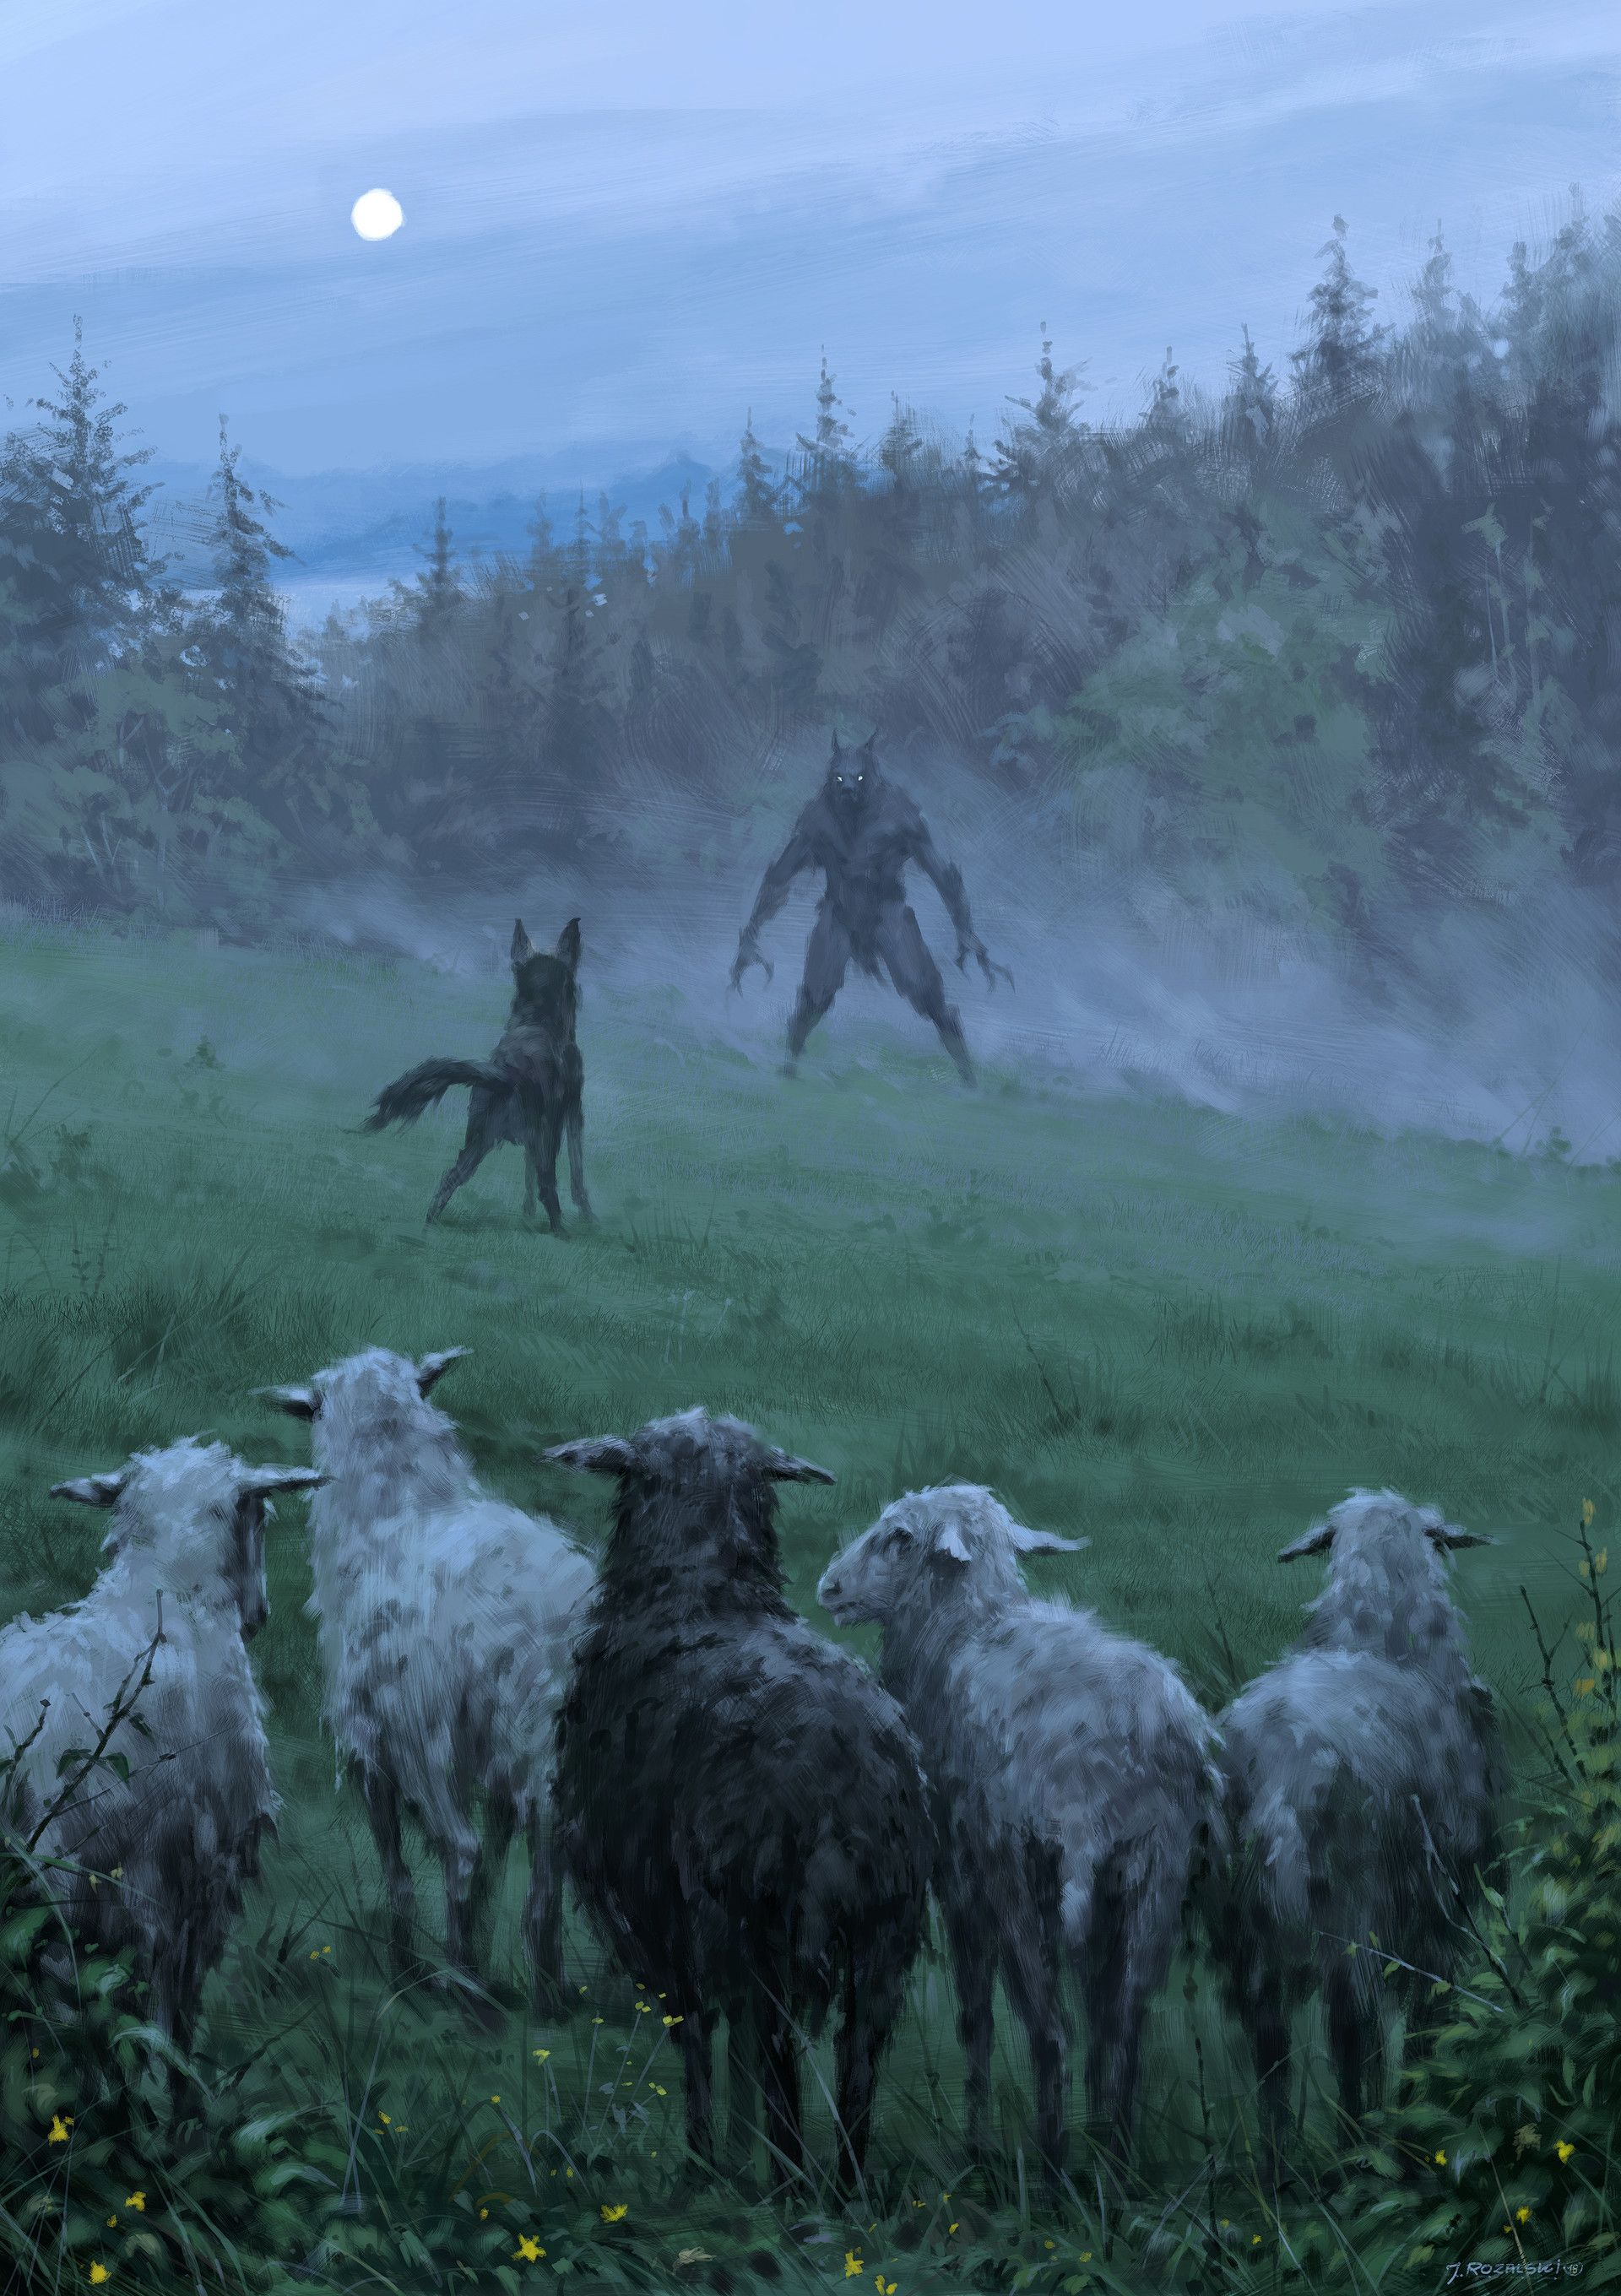 Shepherd and his faithful dog, Jakub Rozalski